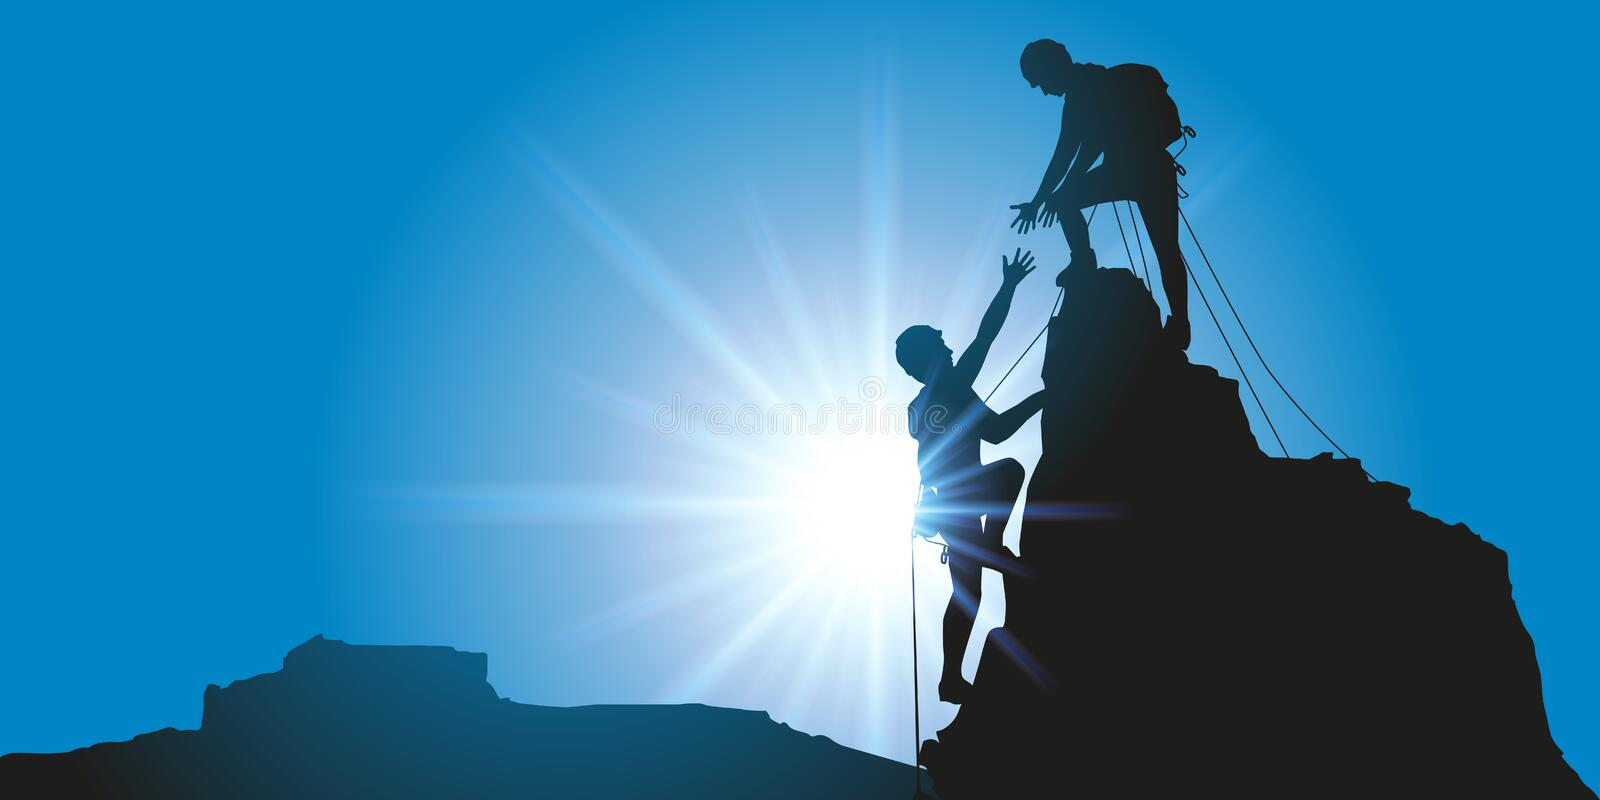 Two mountaineers reach out to reach the summit vector illustration